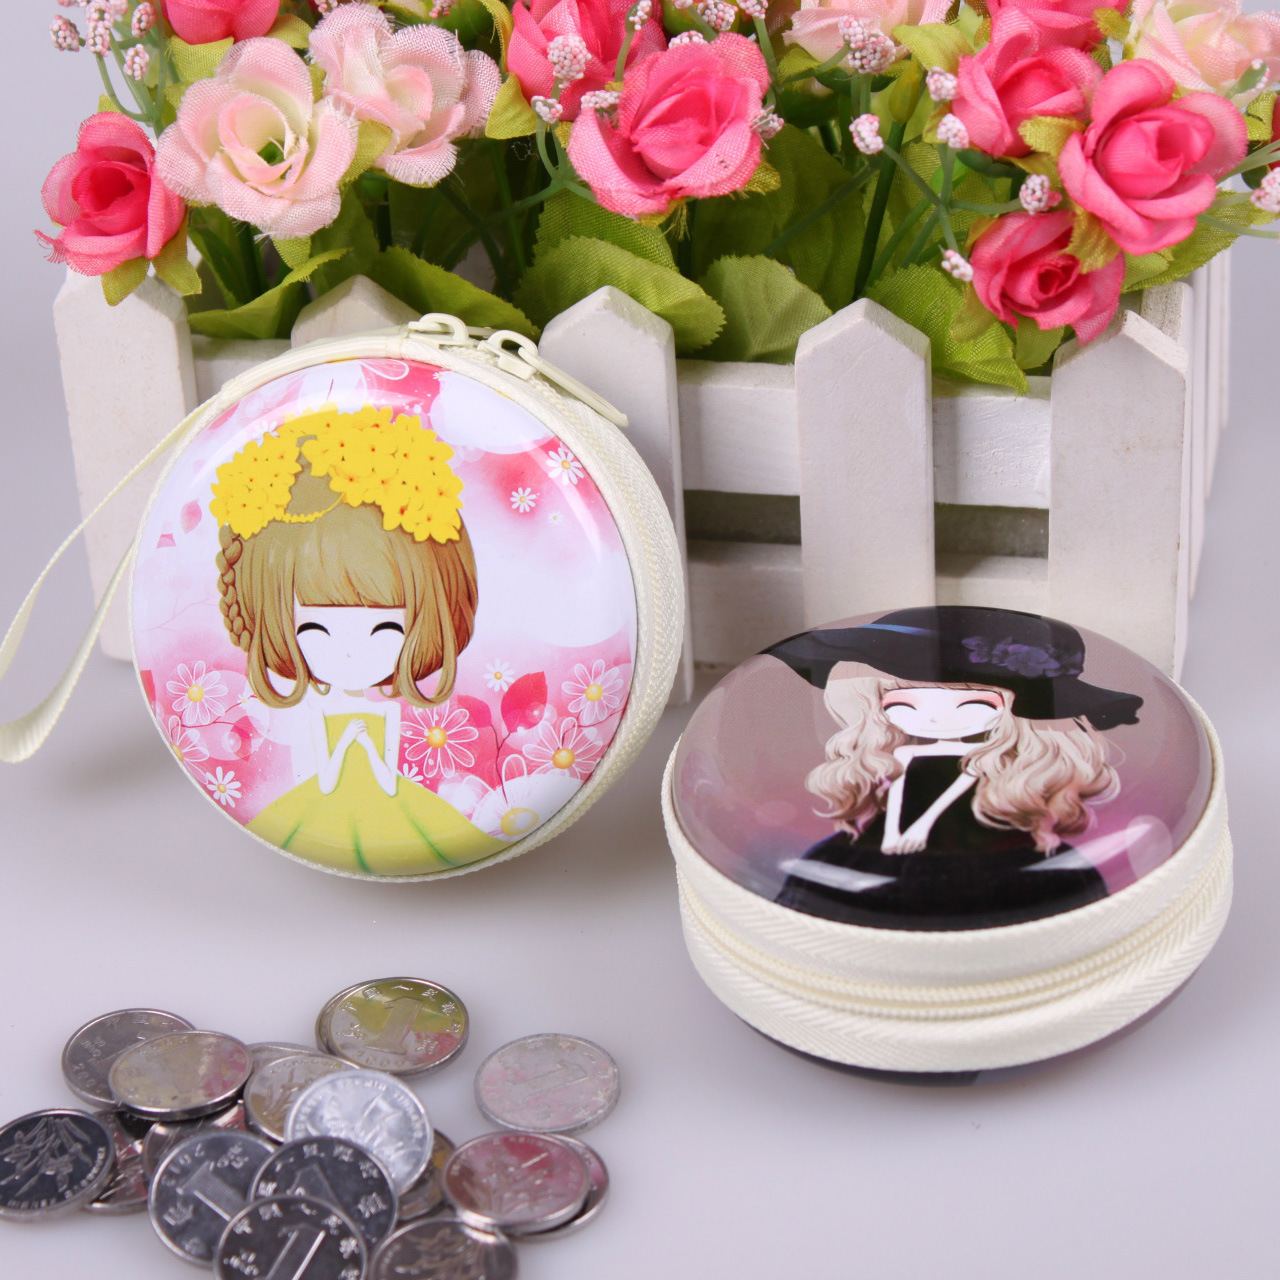 QZH Cartoon Mini Coin Purse Princess Girls Key Case Wallet Children Bag Zipper Kids Baby Girl Change Purse Coin Purses Gifts 2016women coin purses cute girl mini bag key ring case zipper wallet lovely dollar 3d print pouch change purse wholesalecp4024